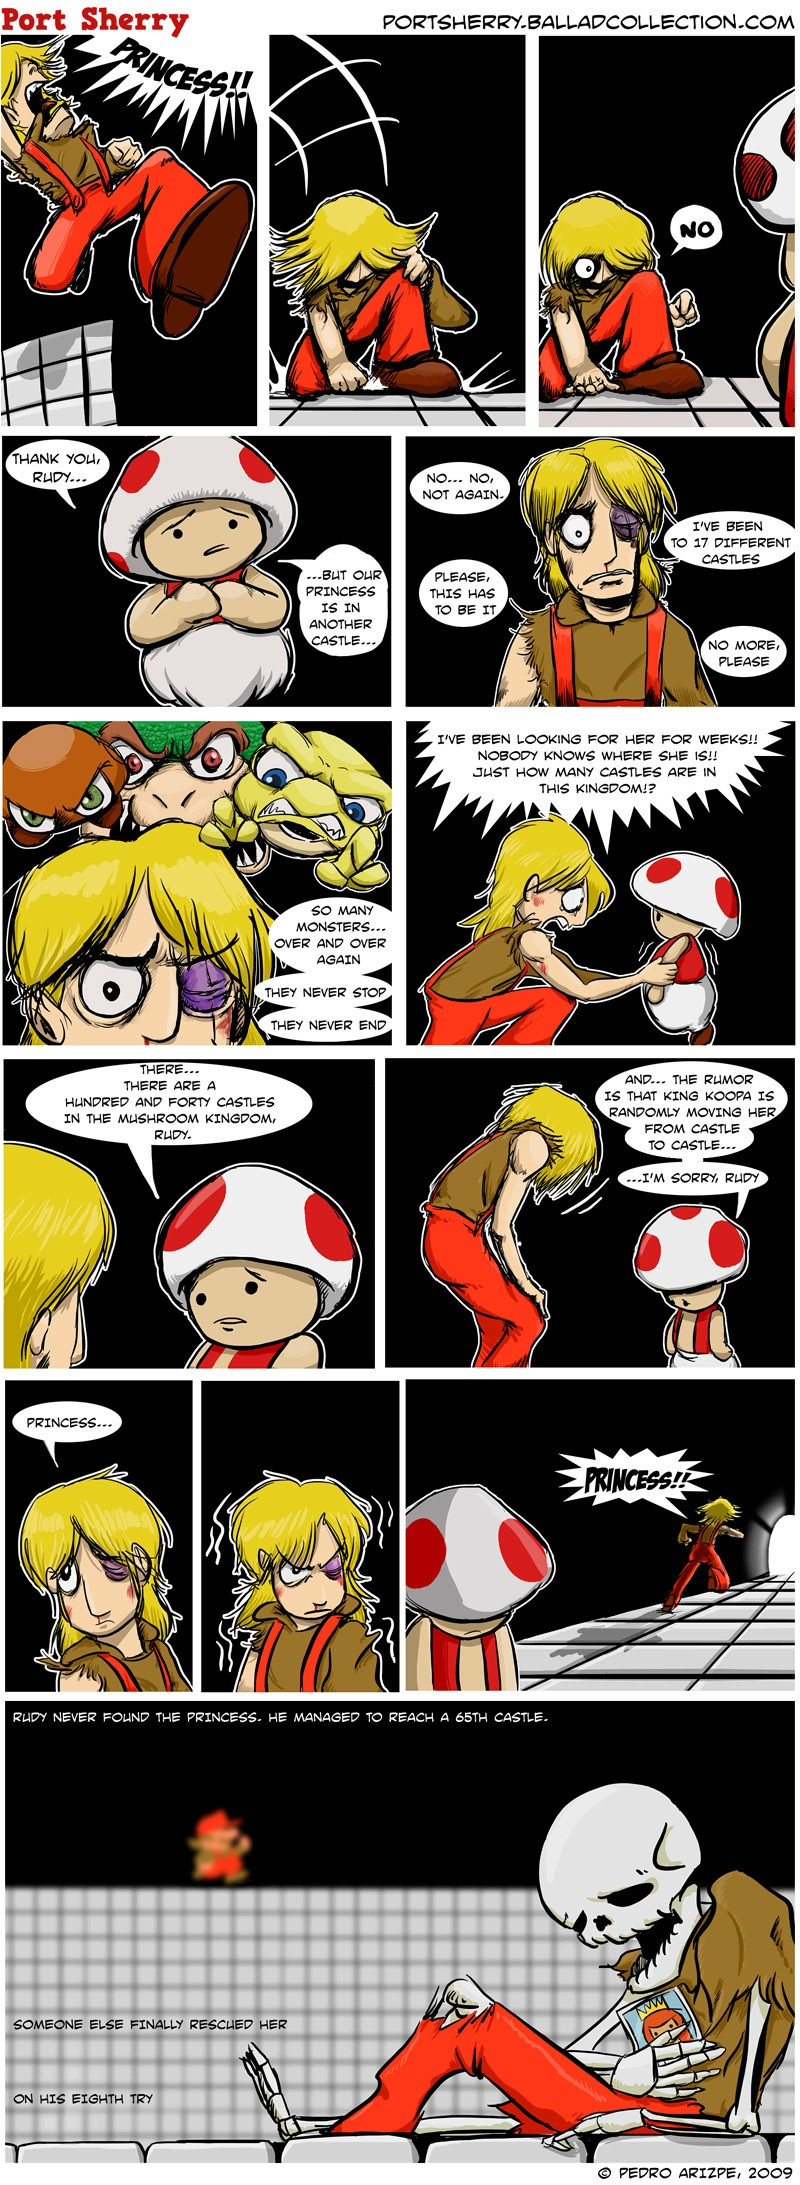 Pics photos funny princess peach pictures - The Unsung Hero Of The Mushroom Kingdom